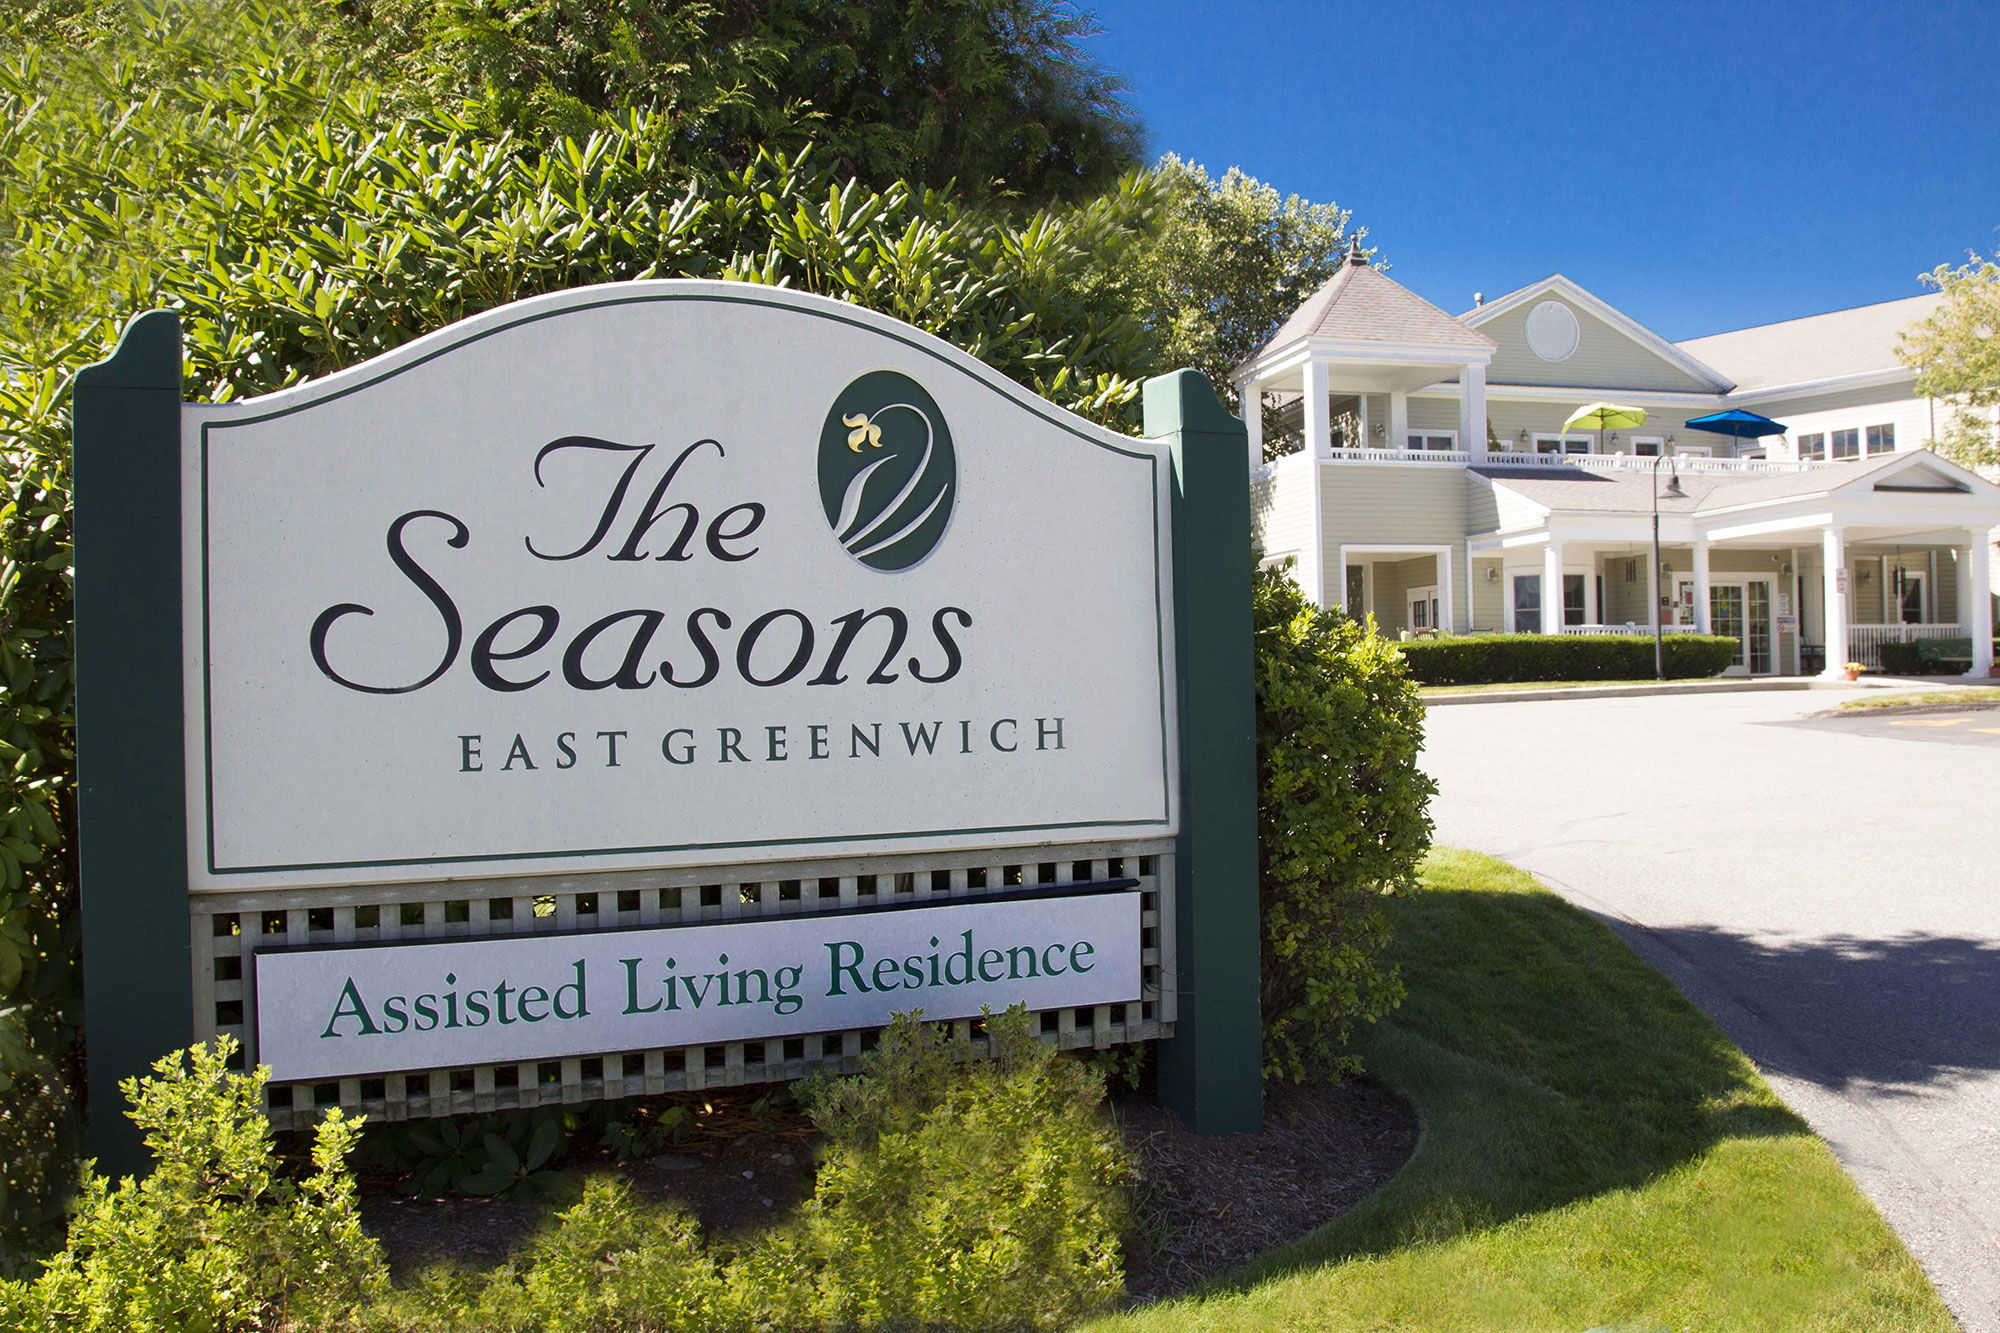 The Seasons - Assisted Living Residence